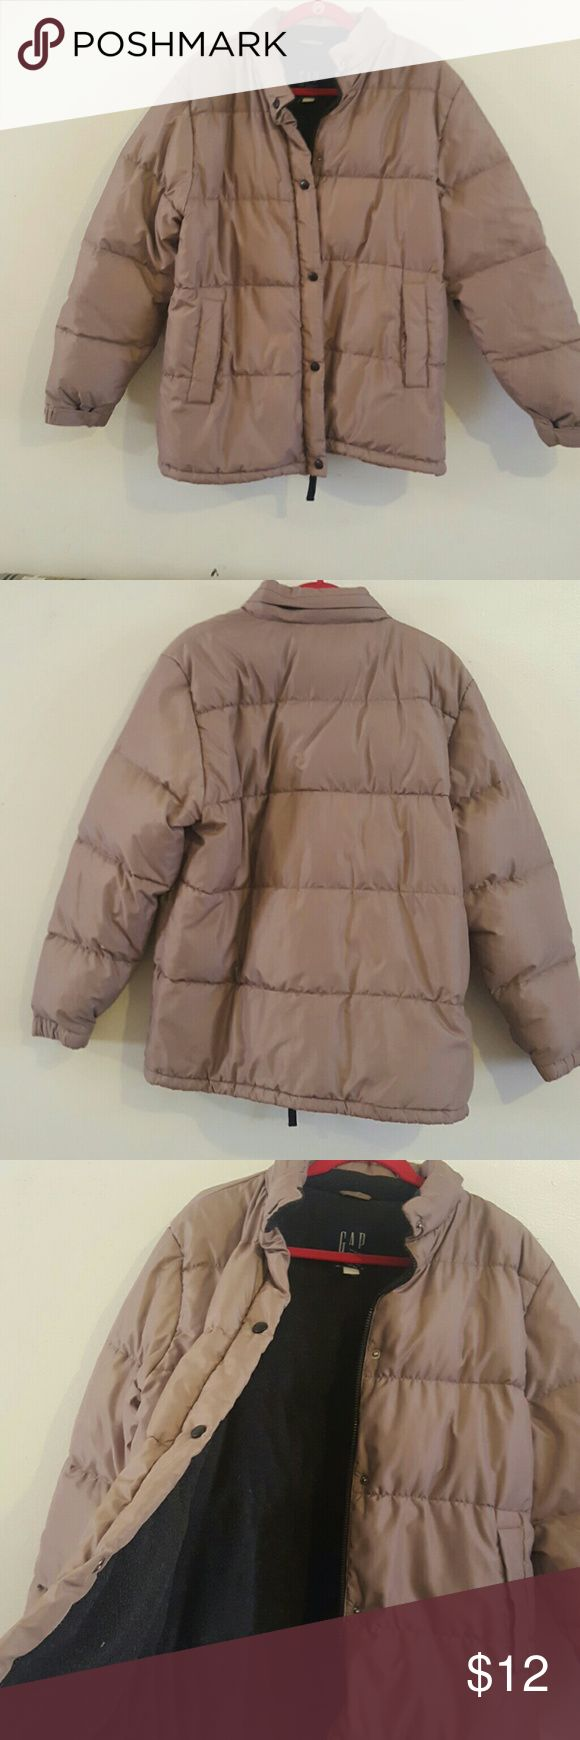 Gap Jacket Tan Gap puff jacket perfect for the cold weather. Jacket does have a couple markings on the left sleeve hardly noticeable. If you any questions or need more photos let me know. :) GAP Jackets & Coats